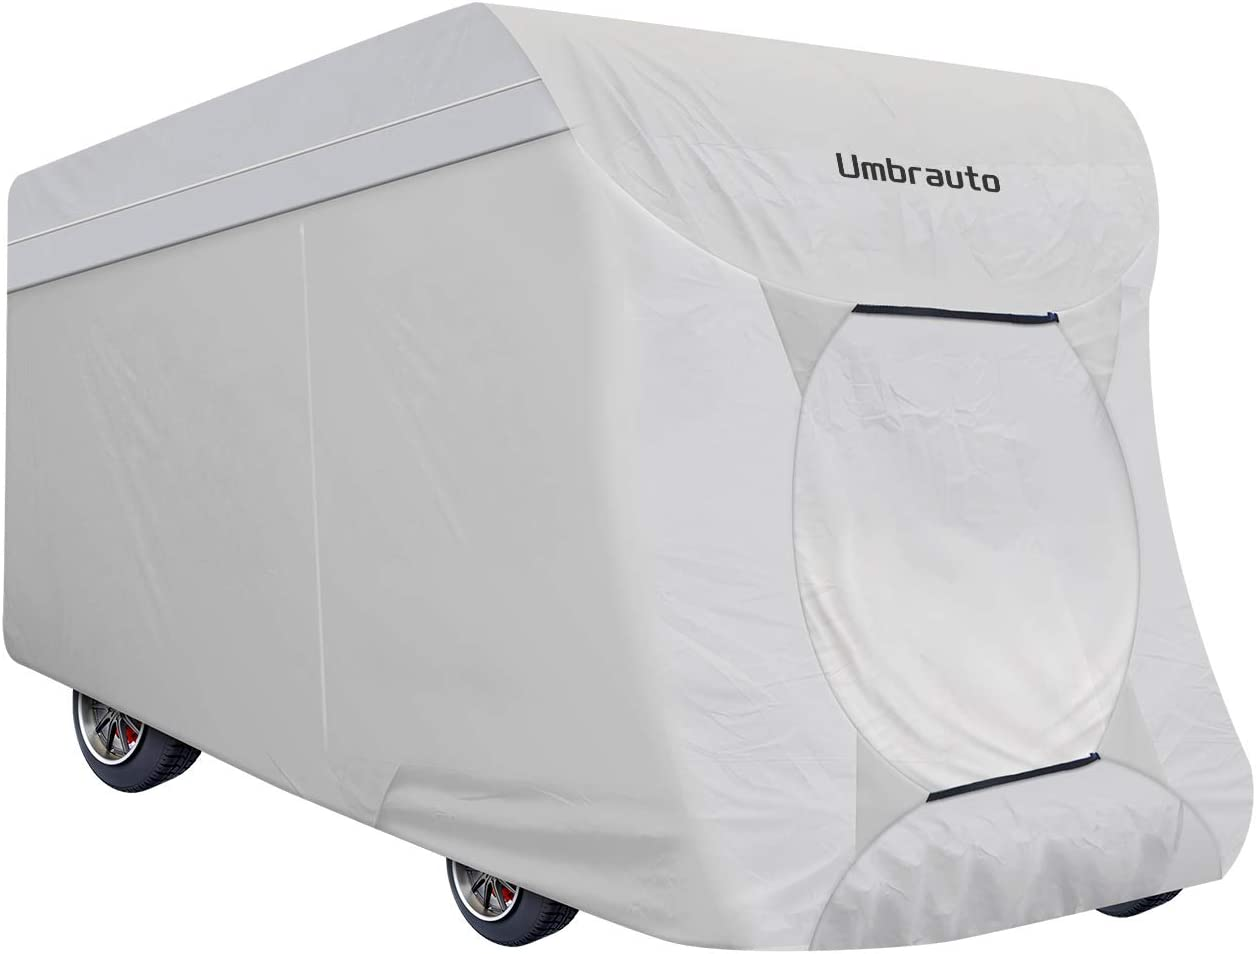 Umbrauto Class C RV Cover 3 Layers Polypro Breathable Waterproof Ripstop Anti-UV RV Motorhome Cover Fits 26Ft to 29Ft, Grey